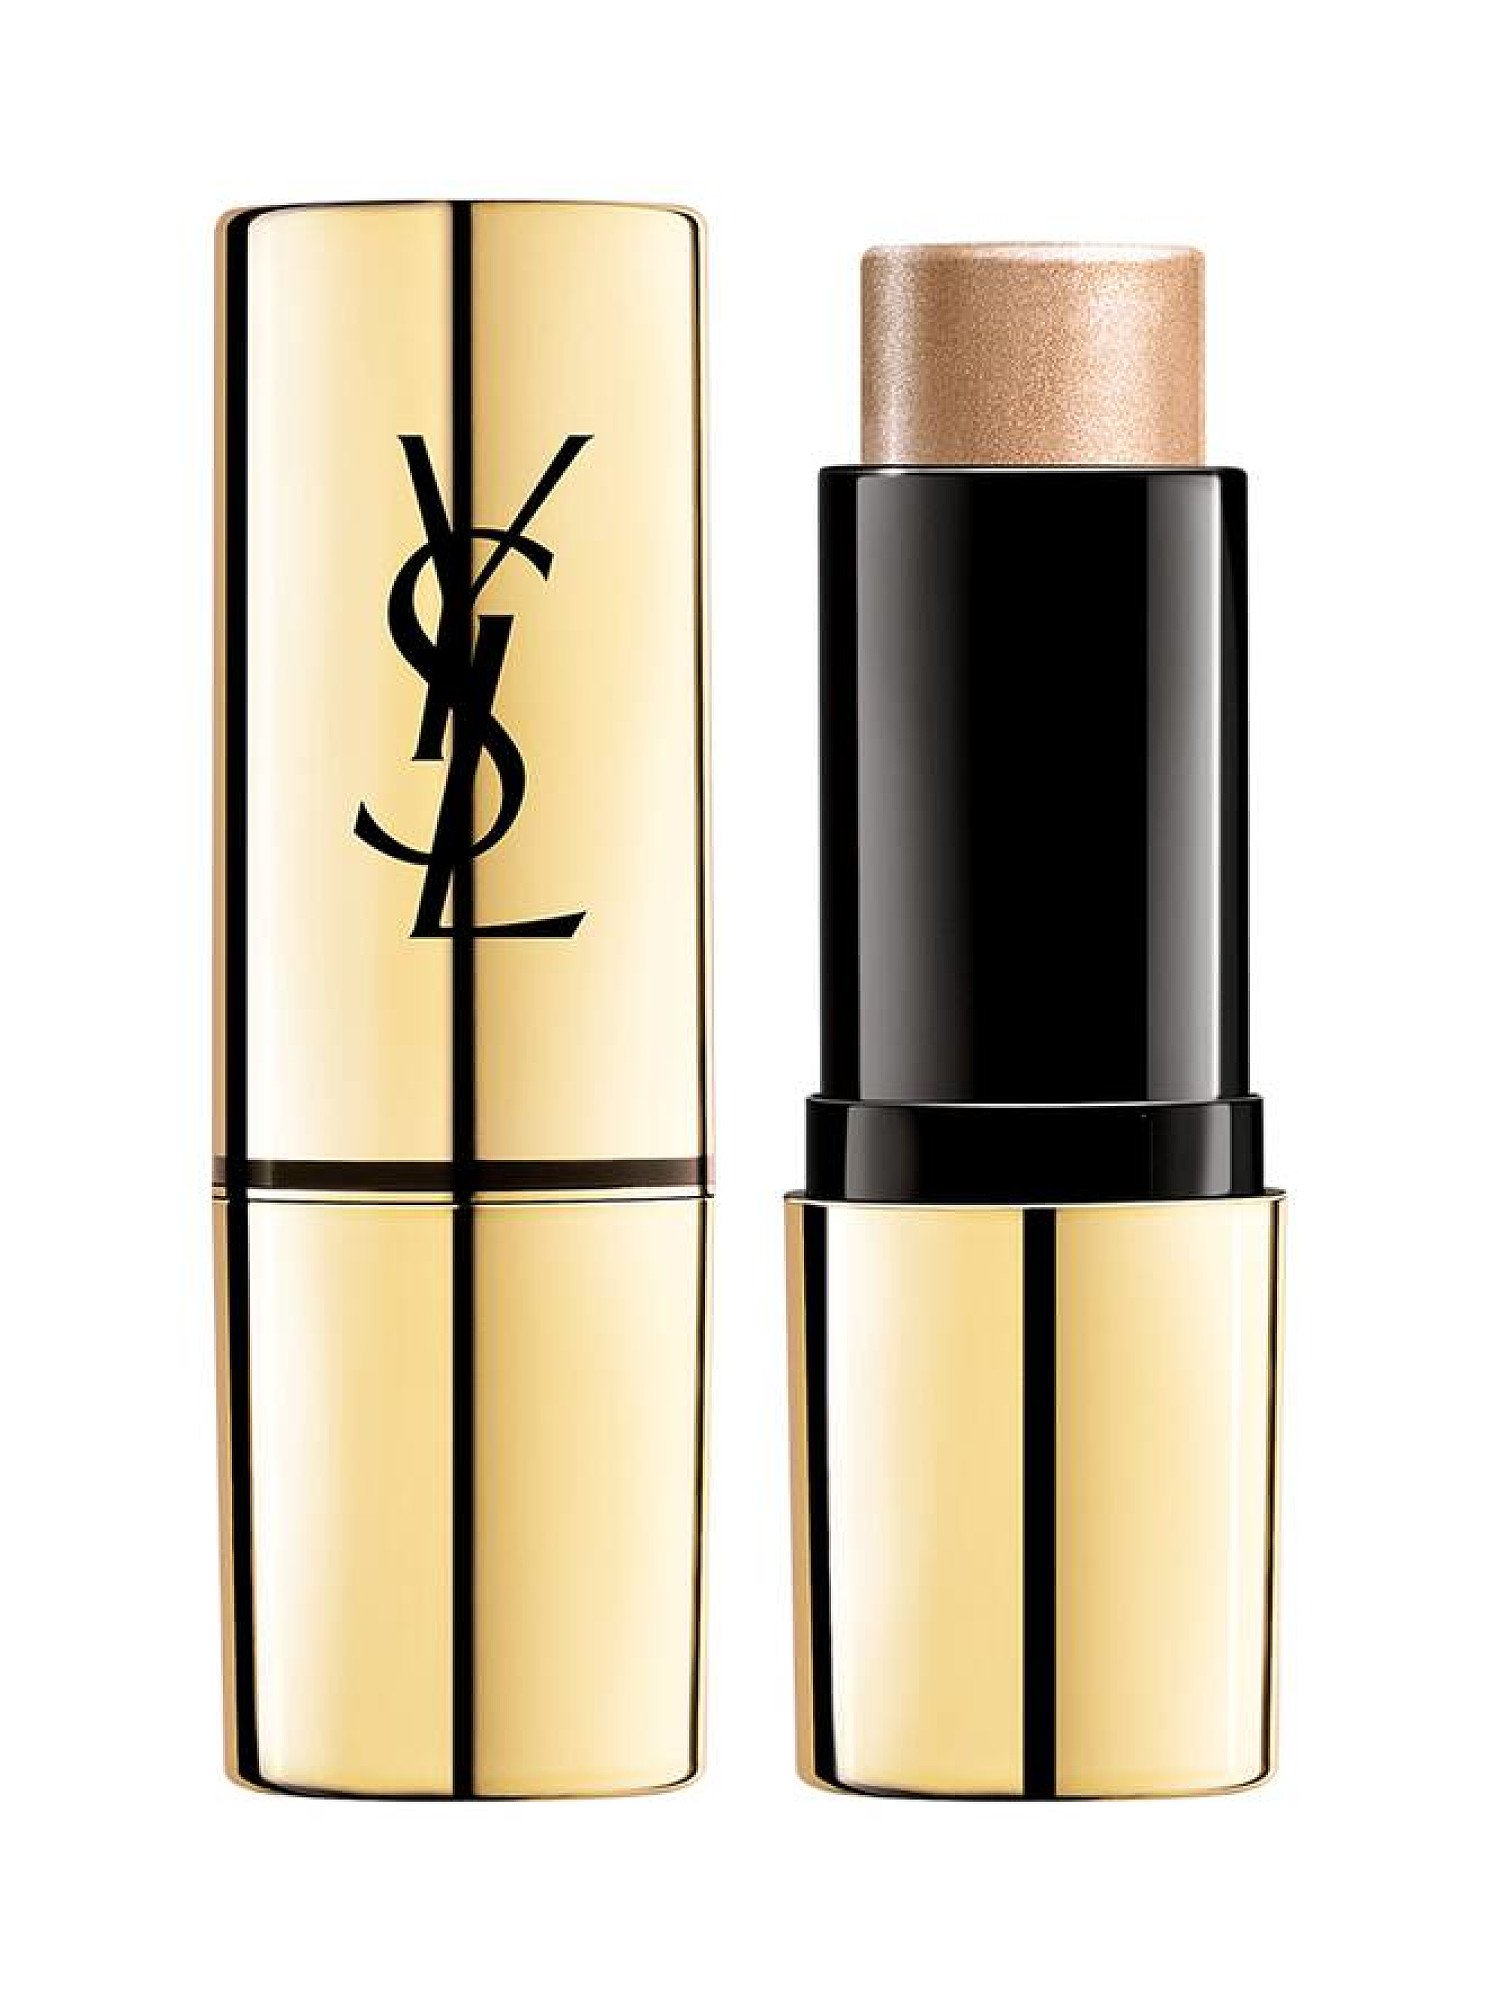 LAST CHANCE TO BUY - TOUCHE ÉCLAT SHIMMER STICK!